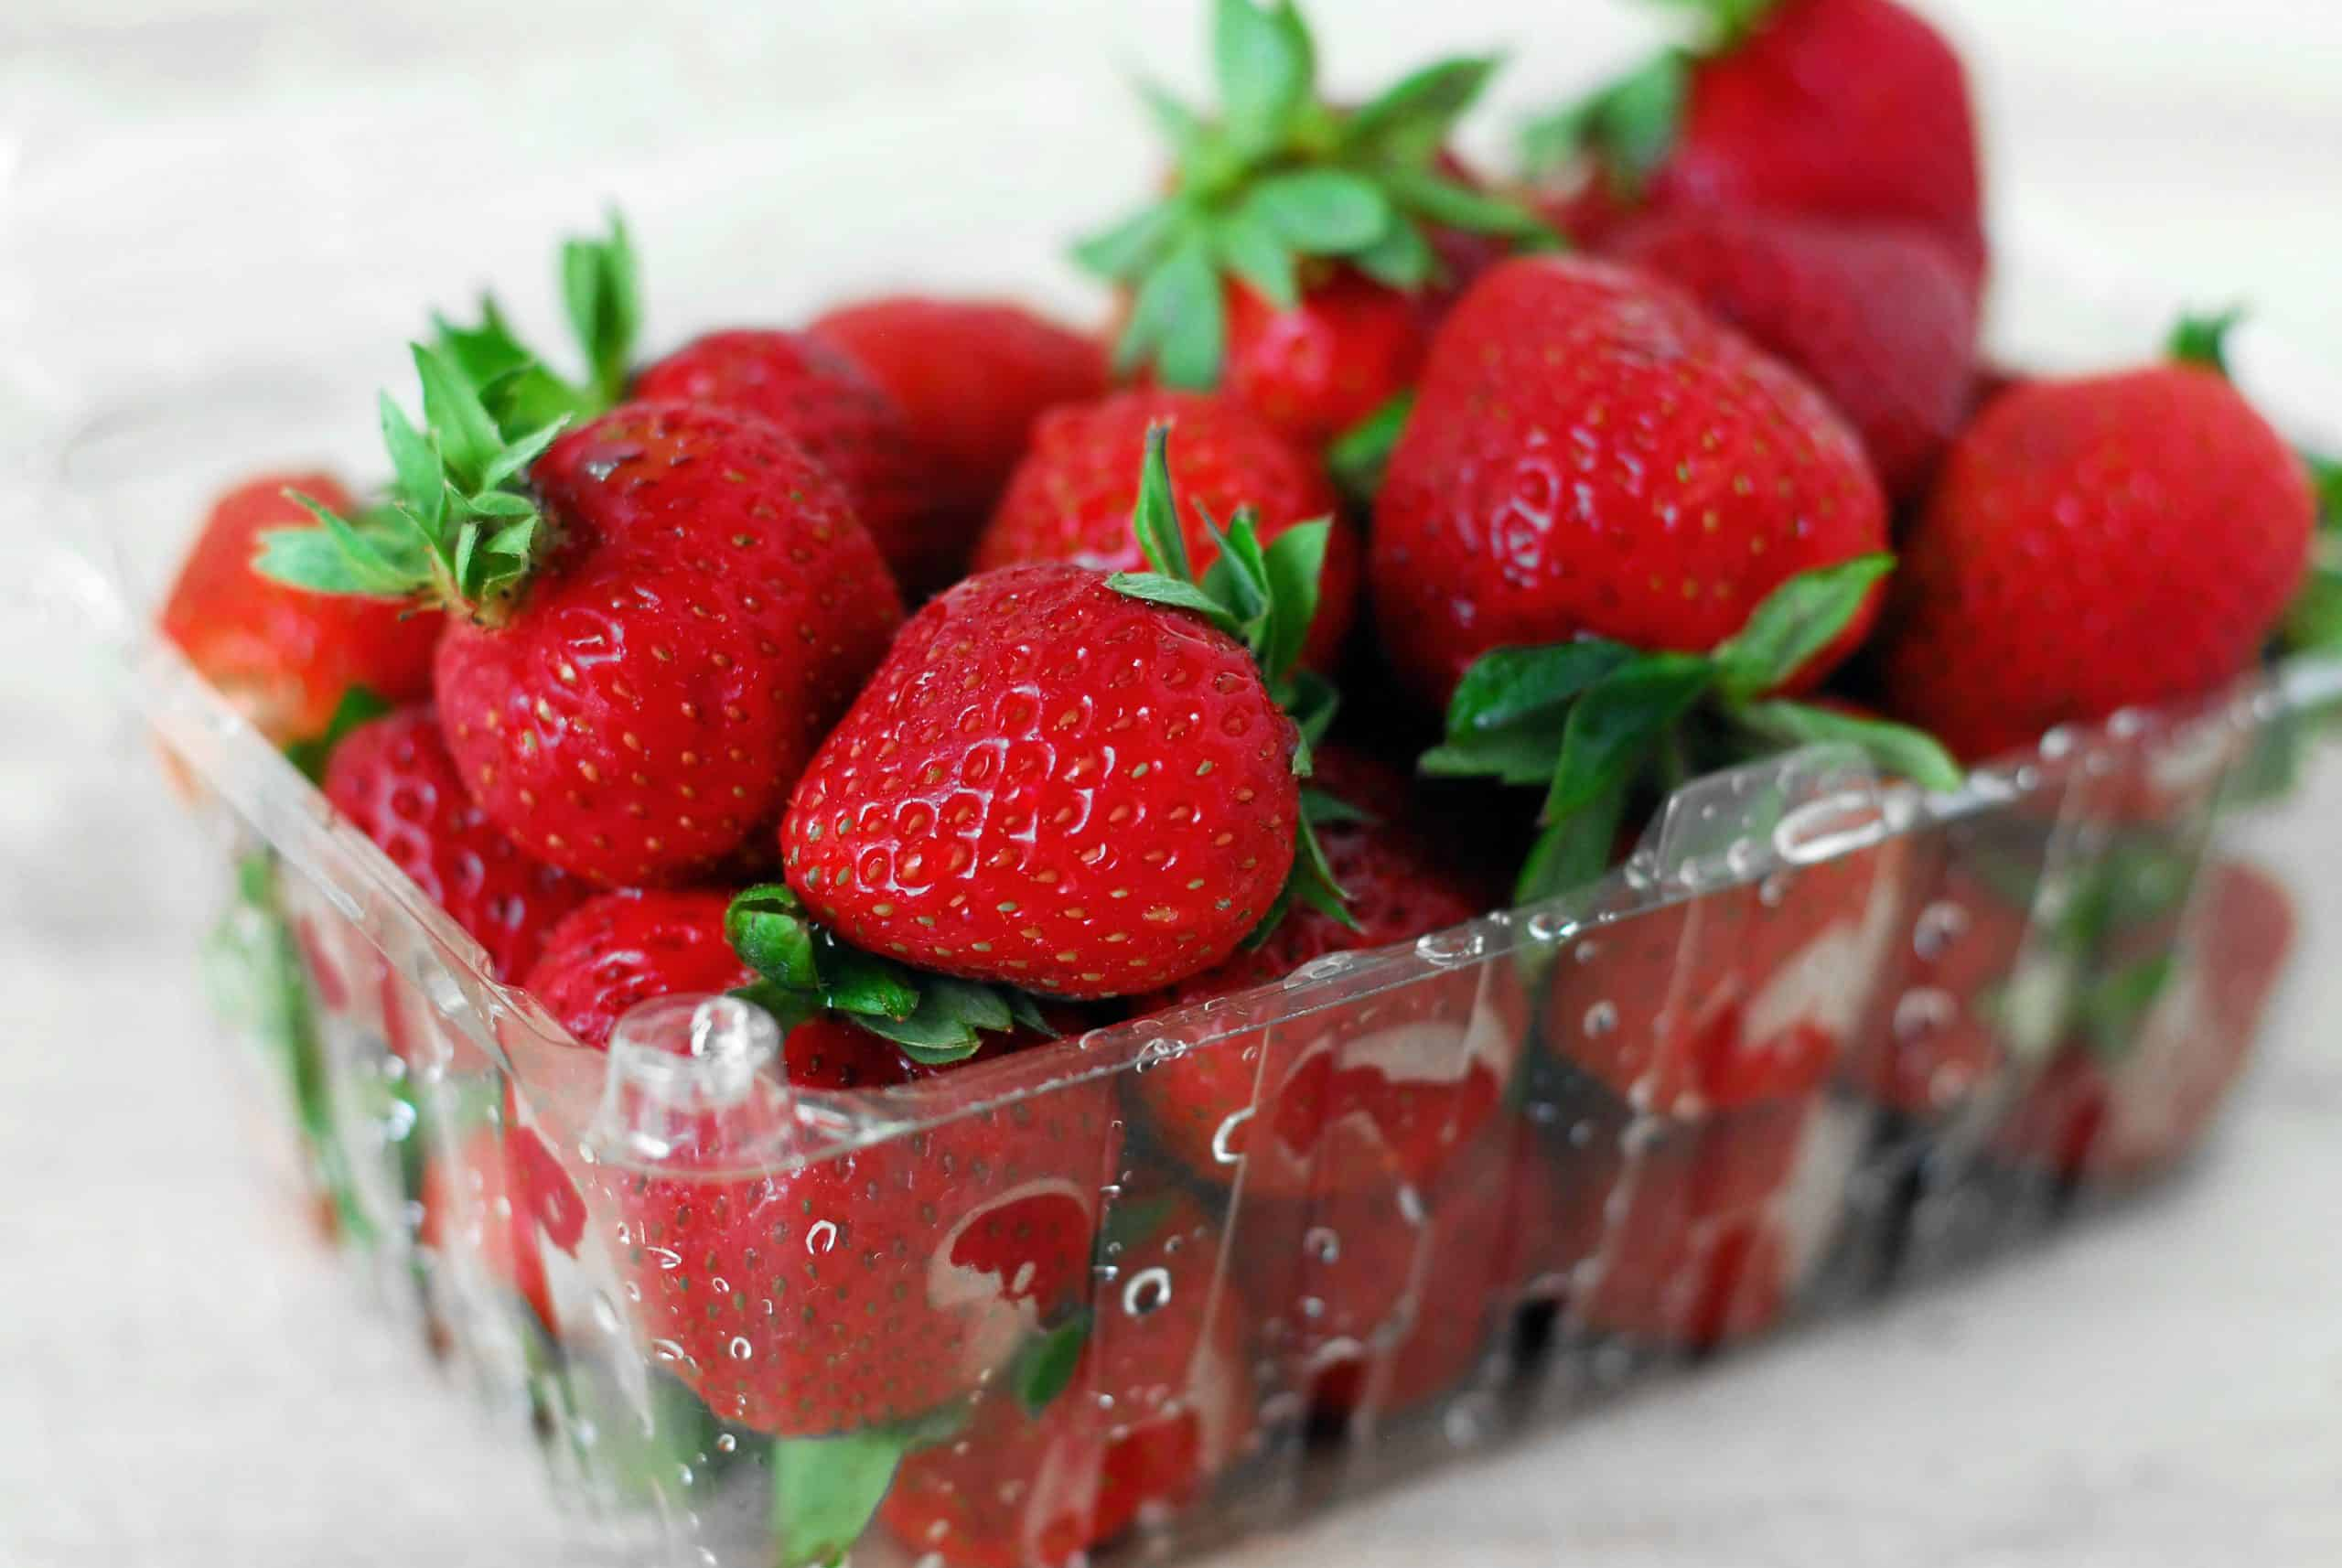 fresh strawberries in a plastic crate